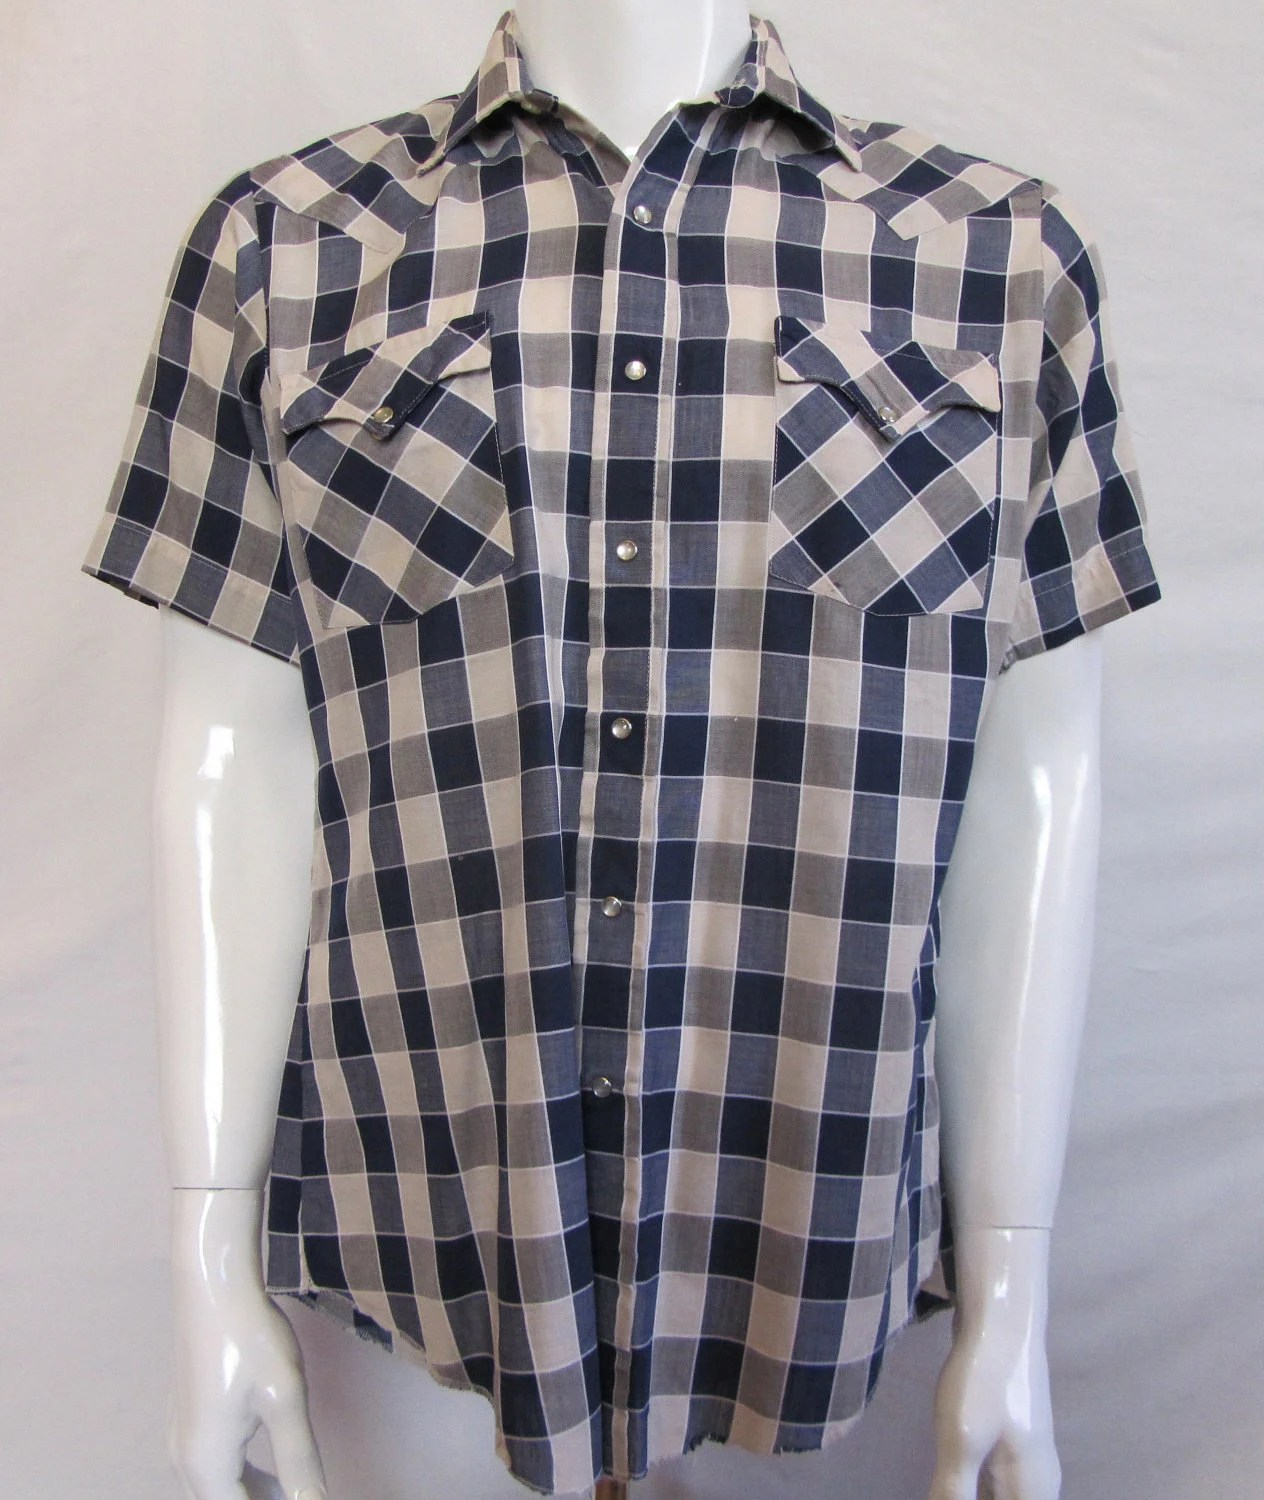 Mens MEDIUM cowboy shirt, Open Range, short sleeved, vintage, navy and beige gingham, pearl snaps